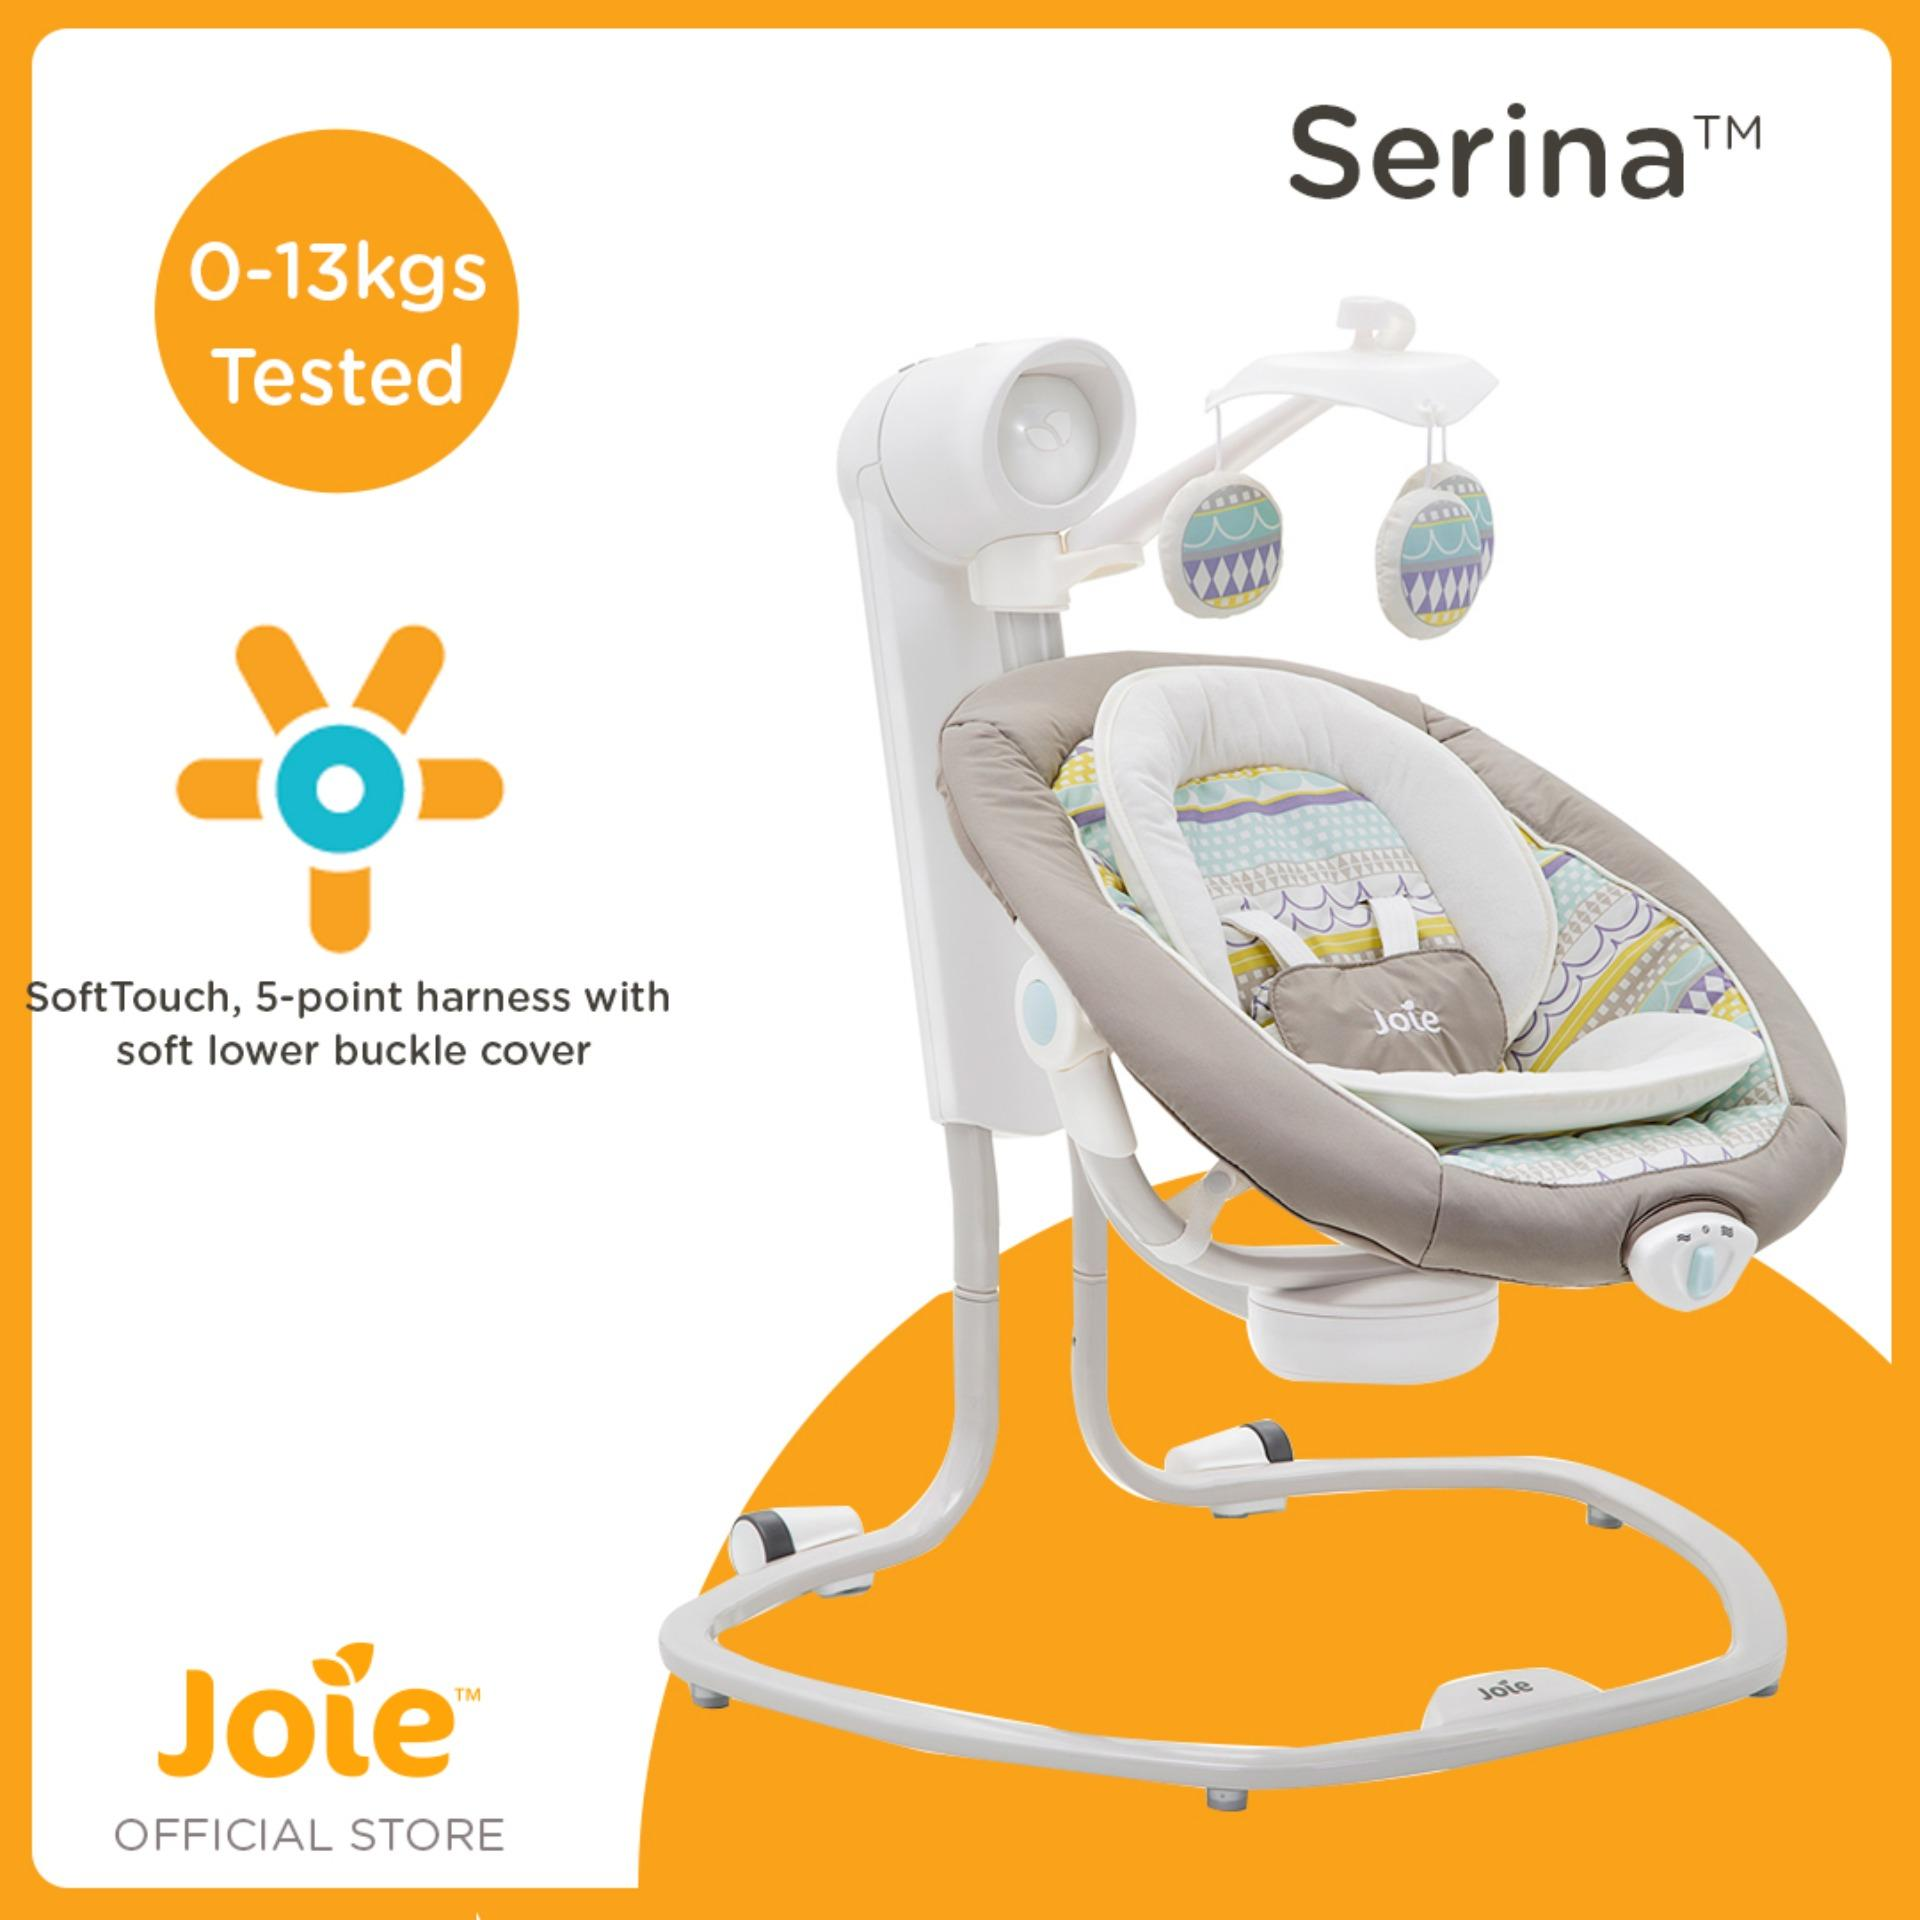 Joie Serina Swing Forest Friend By Joie Baby Official Store.